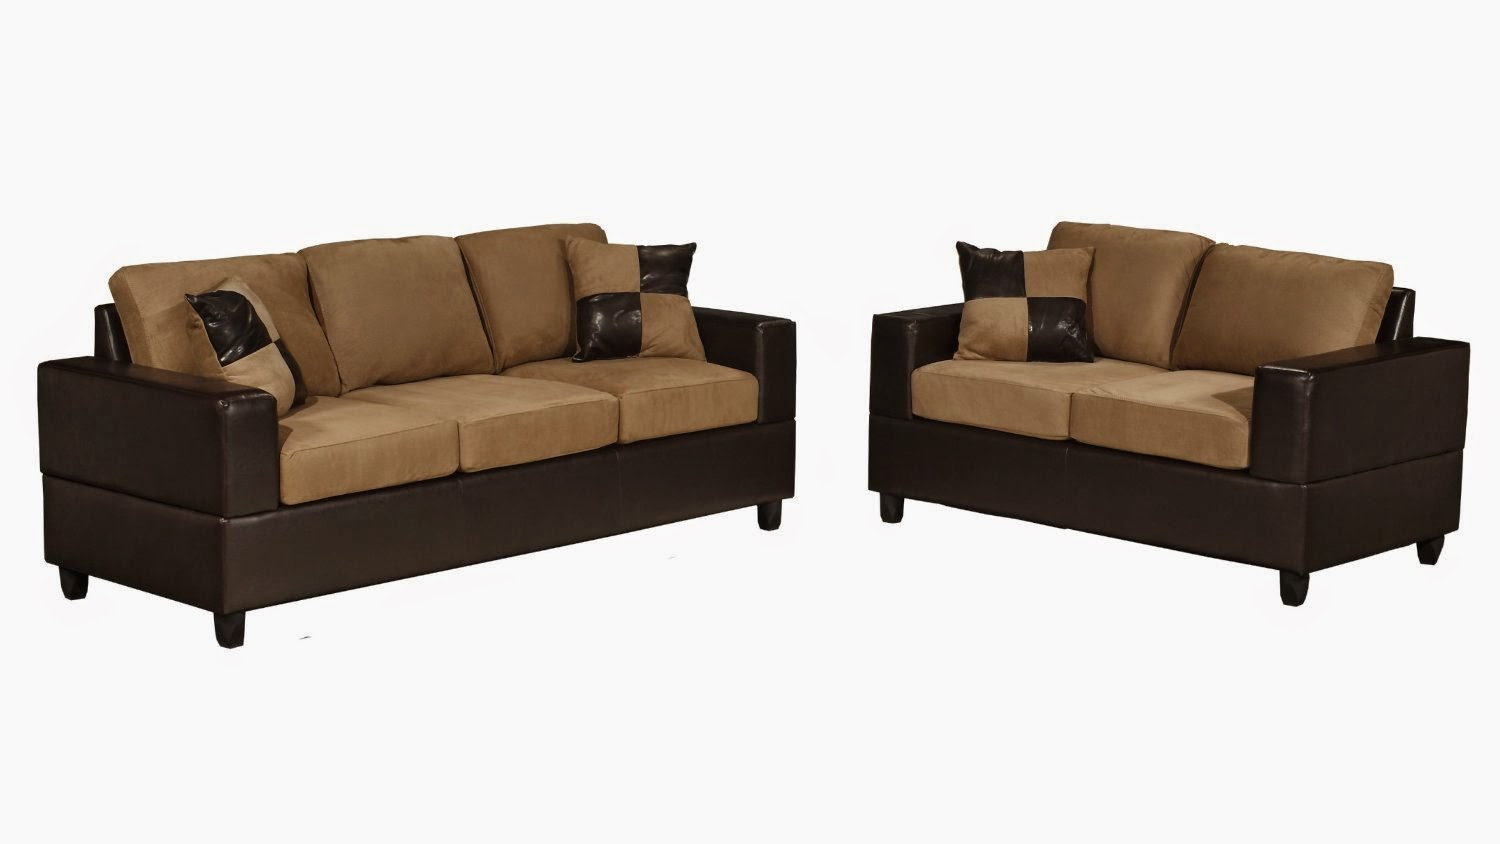 sofa for sale: sofa sets for sale